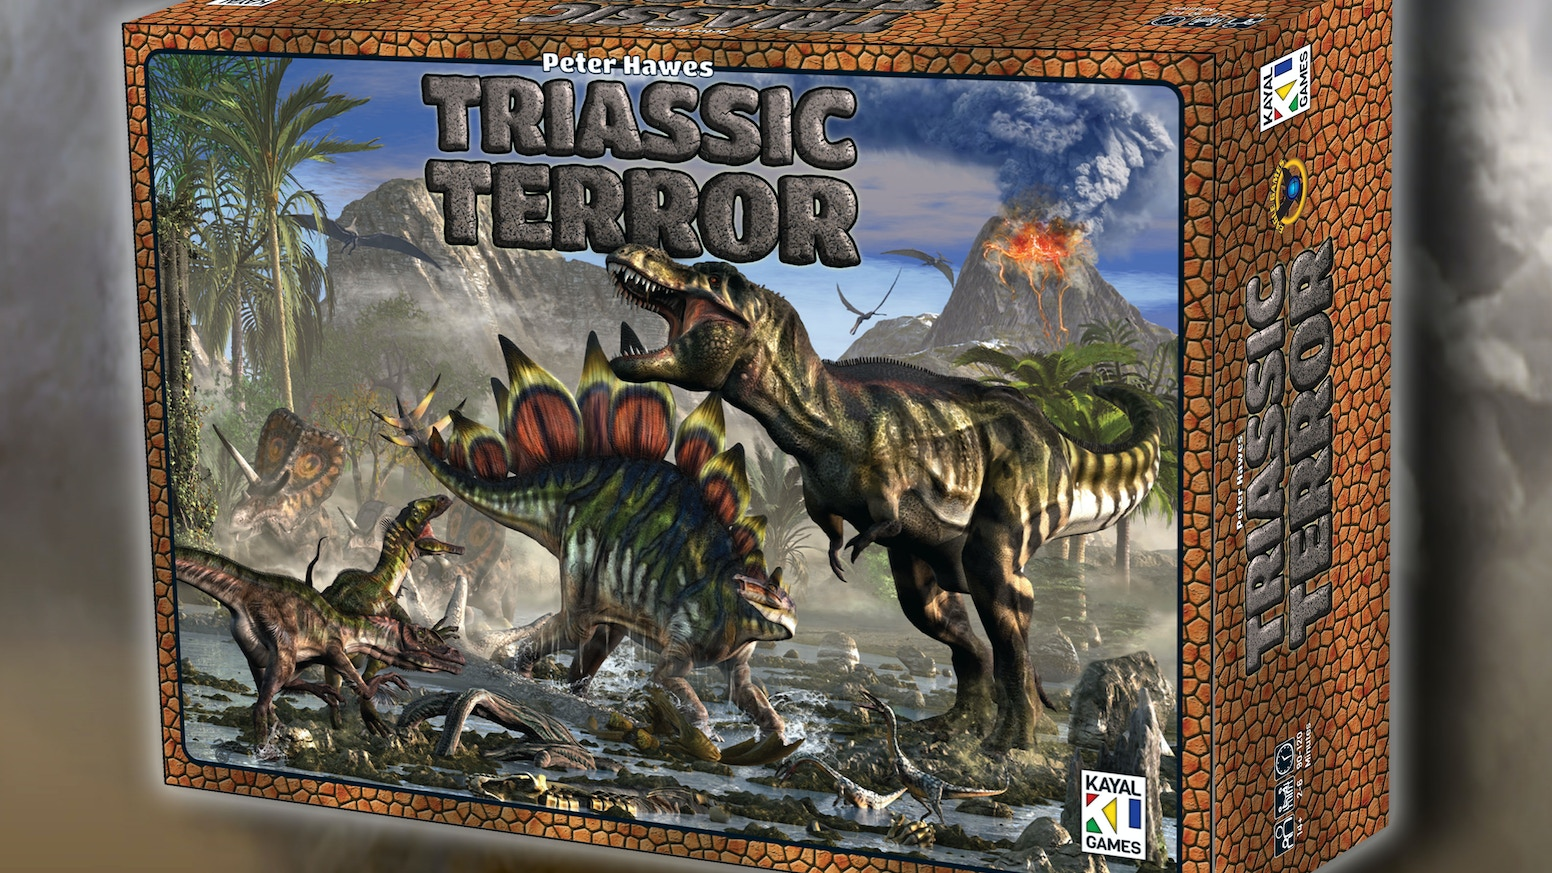 In Triassic Terror you compete for the best dinosaur herd habitats in four primeval environments--swamp, forest, mountains and desert.